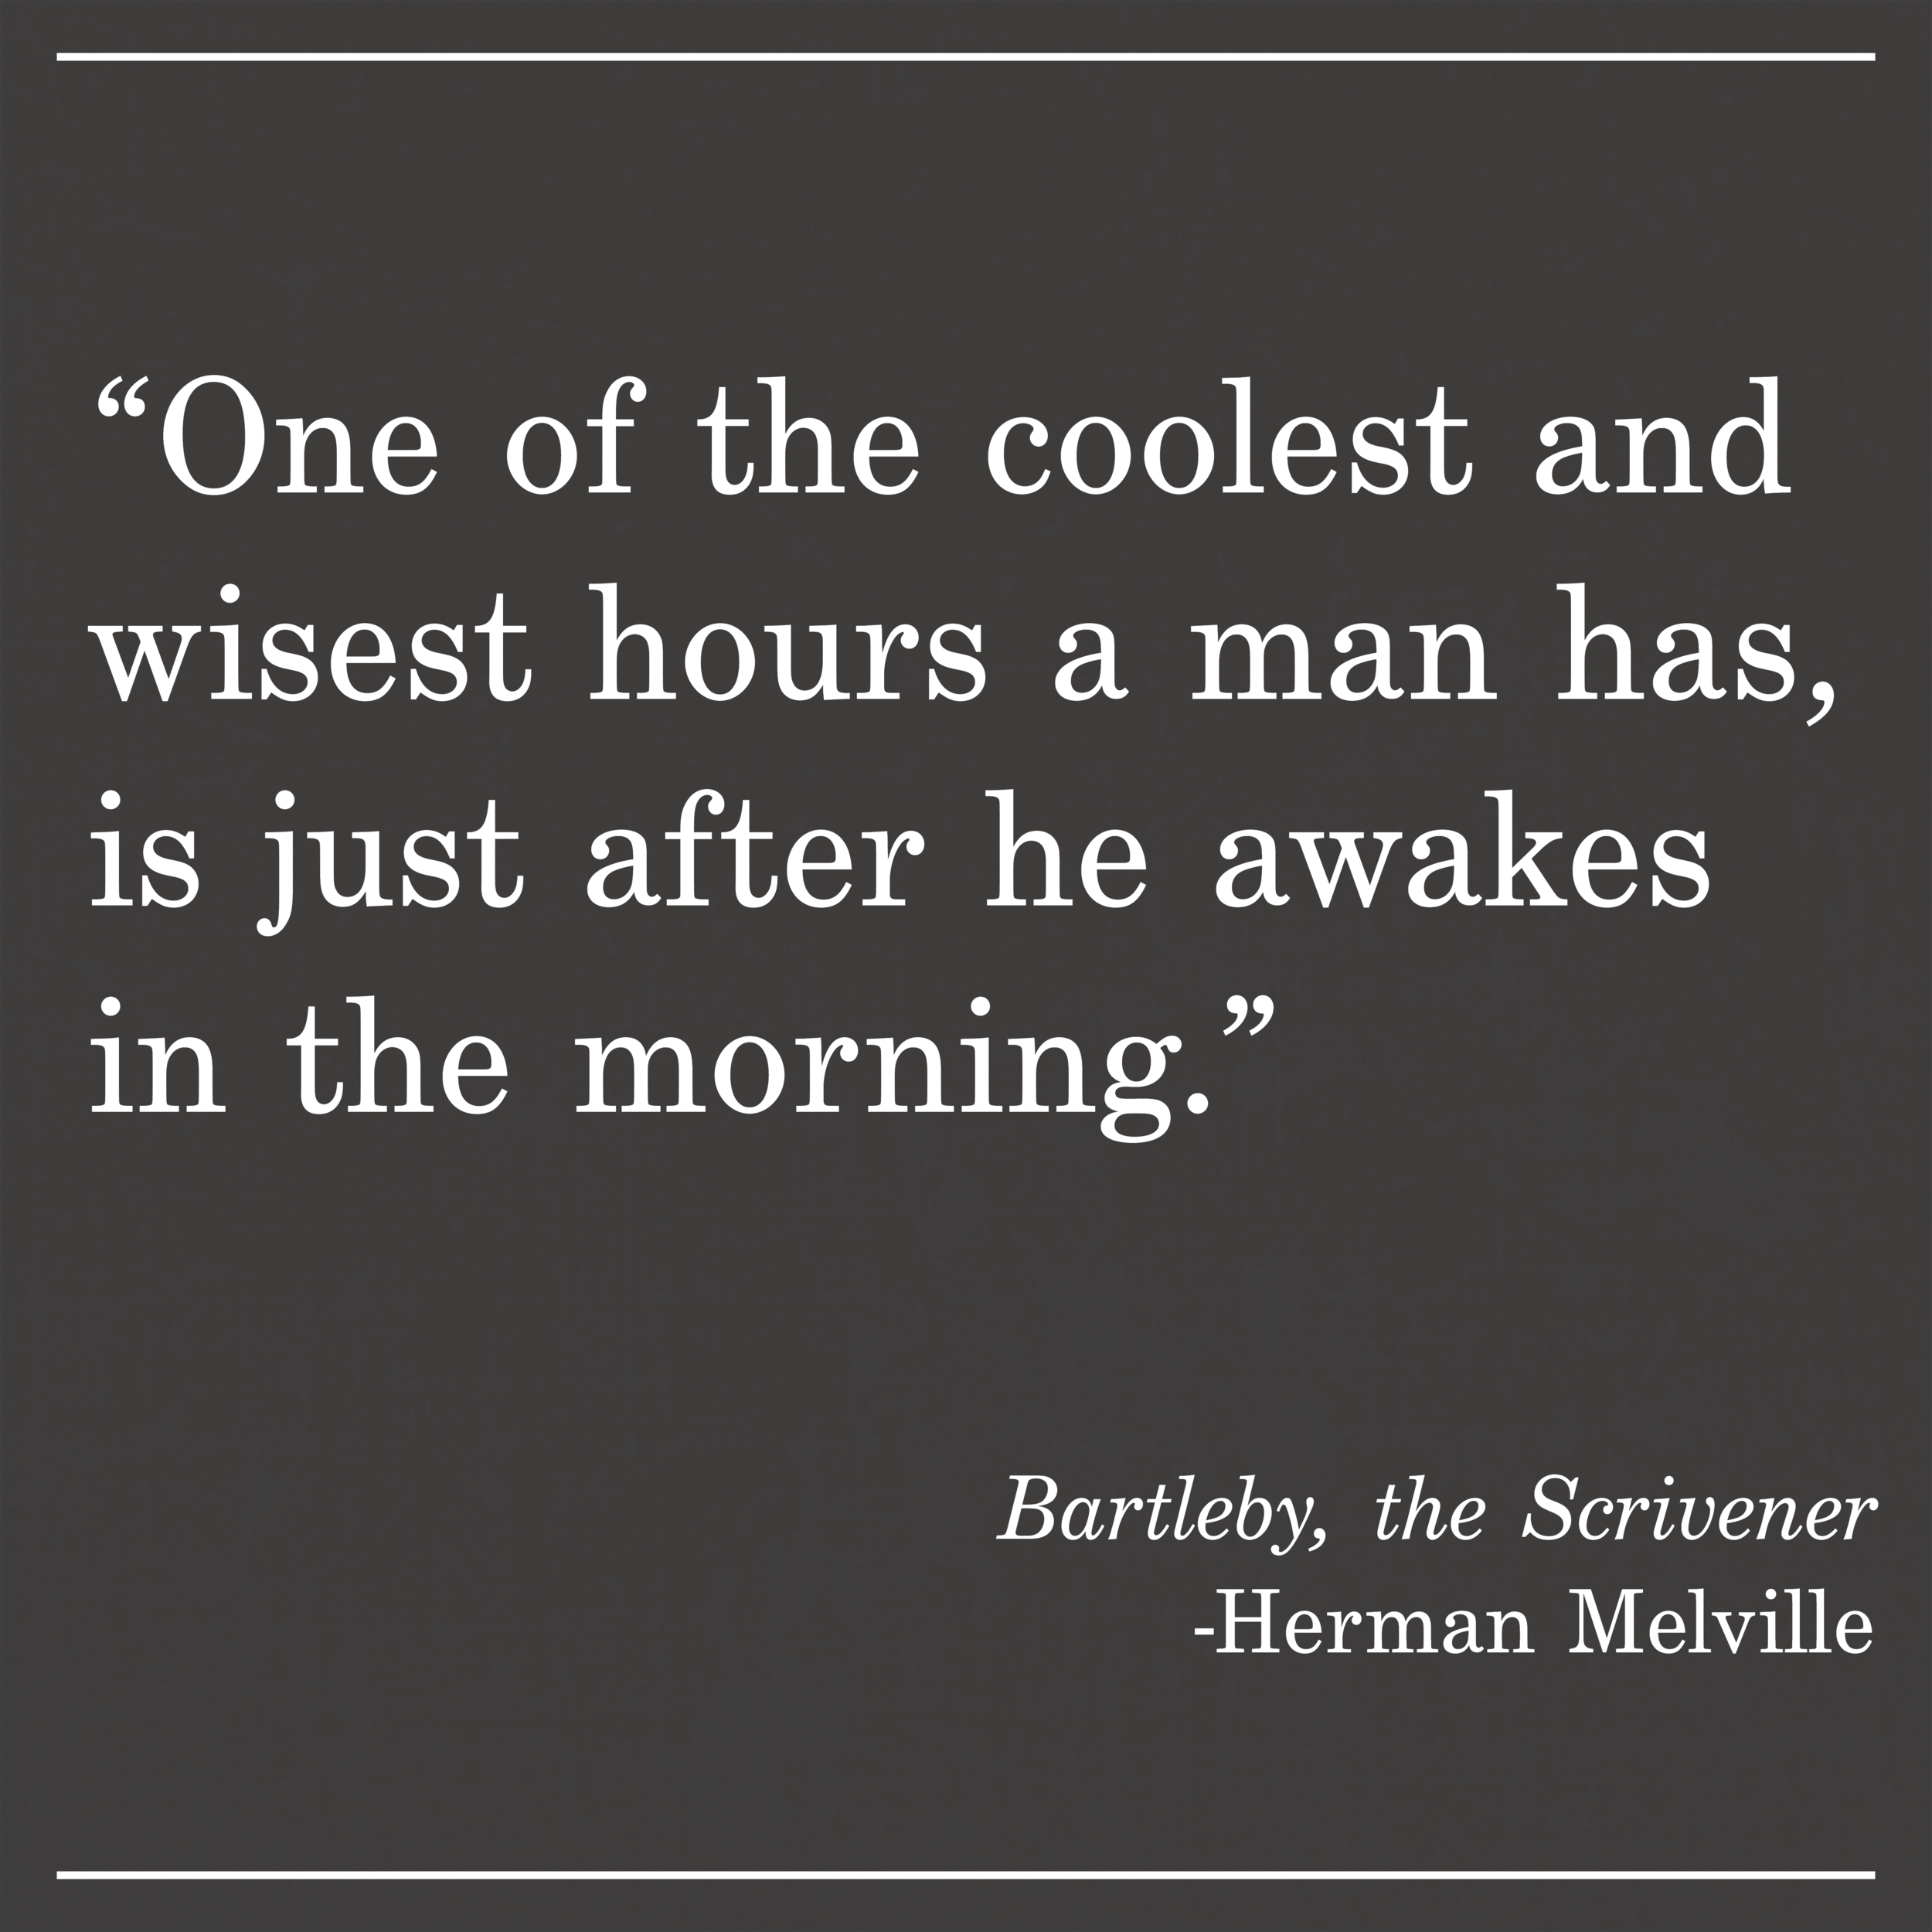 Daily Quote Herman Melville Bartleby the Scrivener